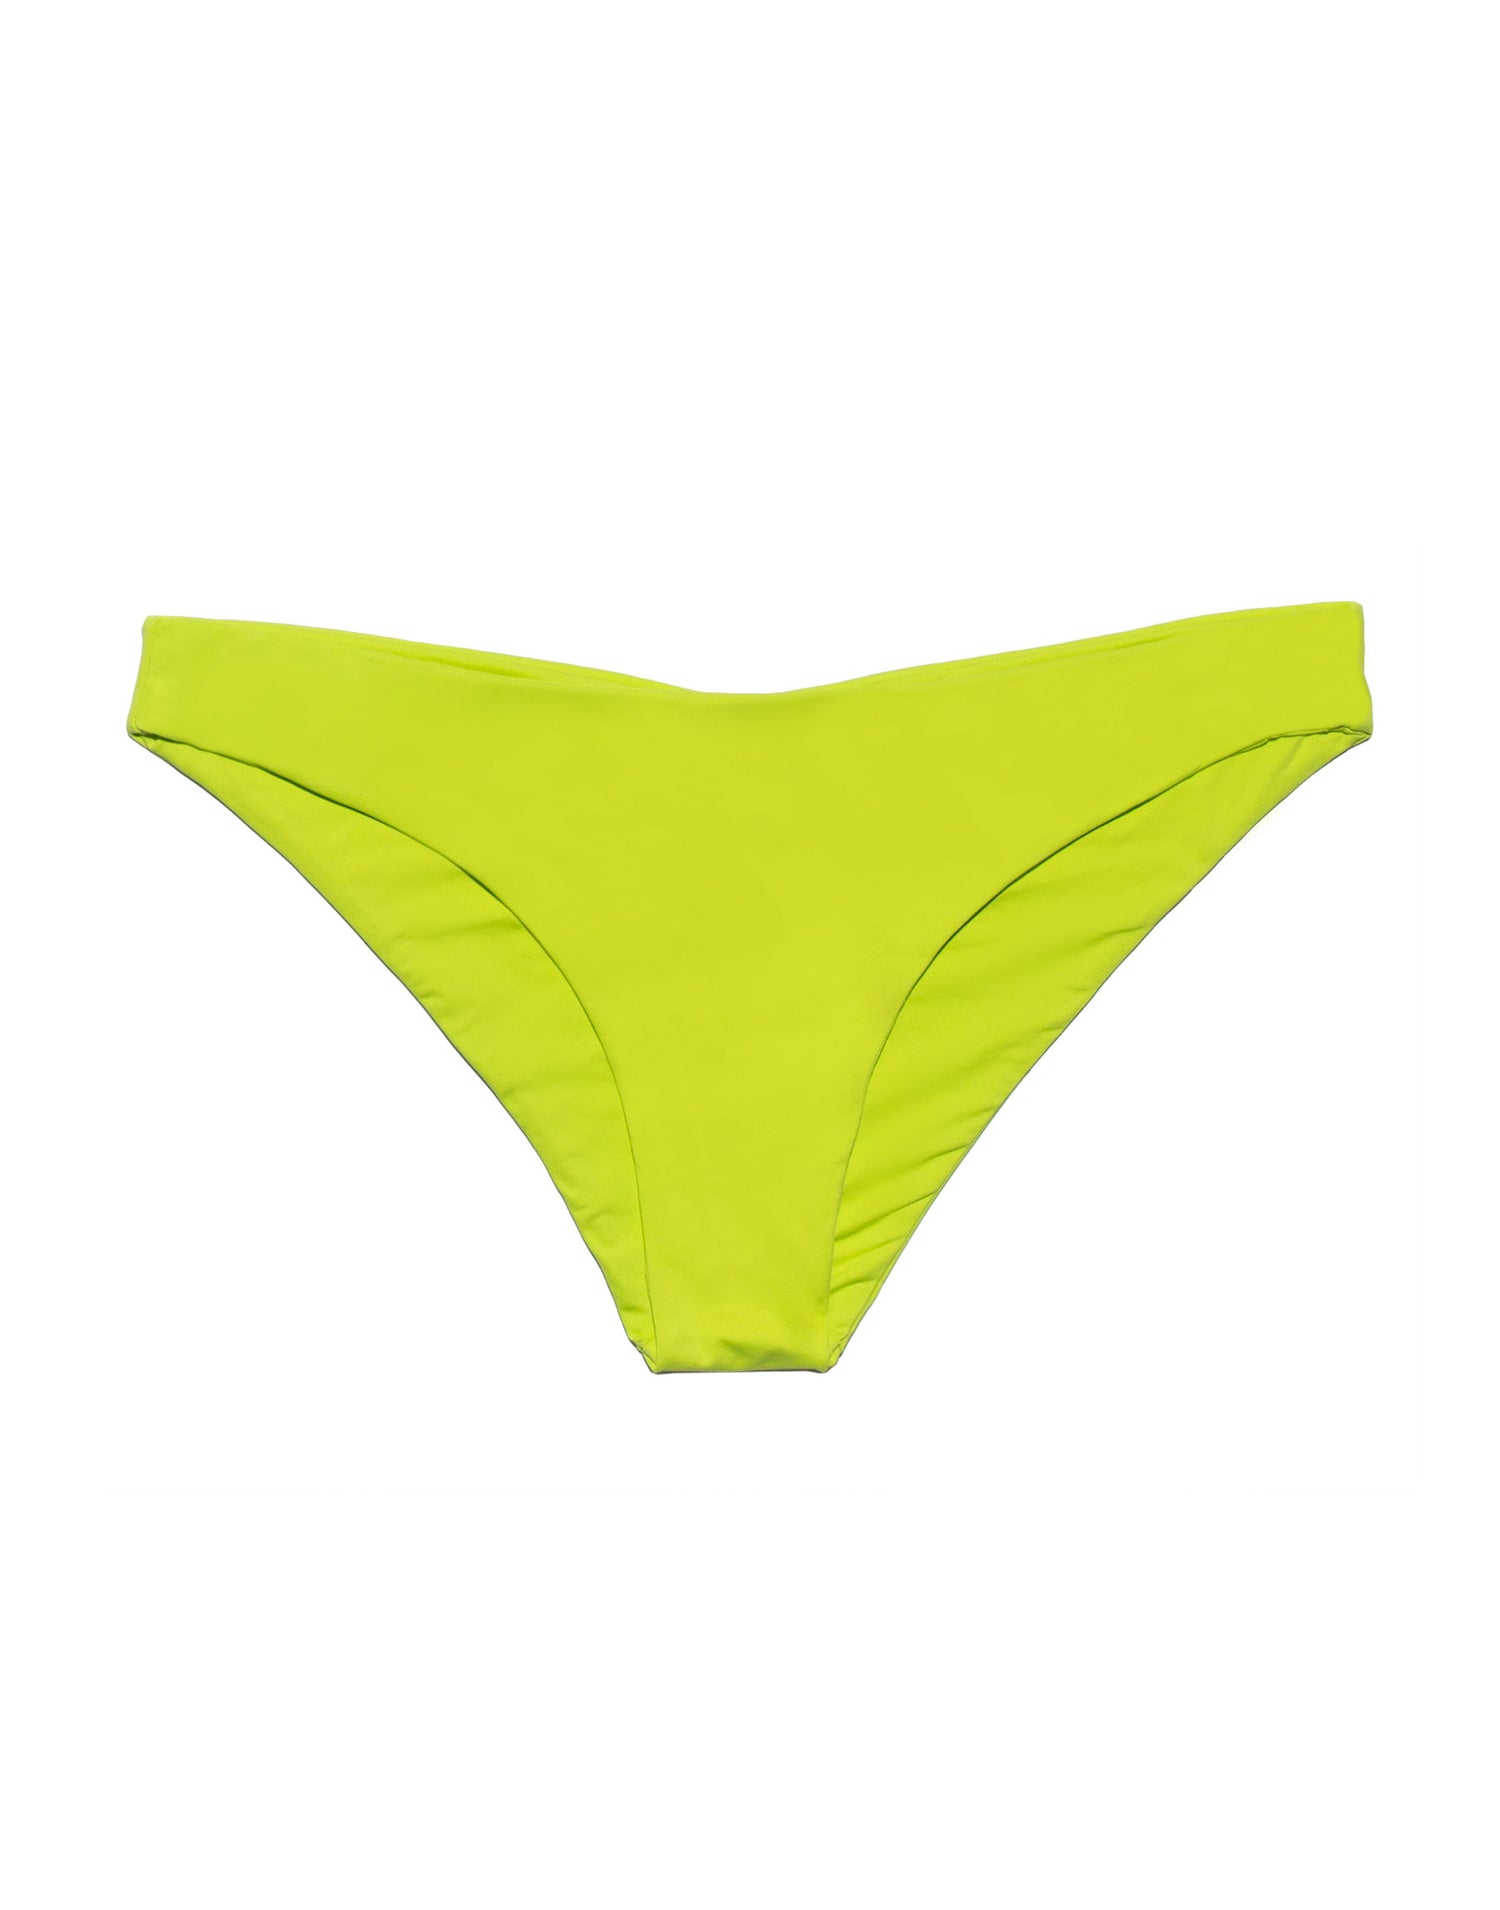 Stephanie Midi Bikini Bottom in Lime - product view